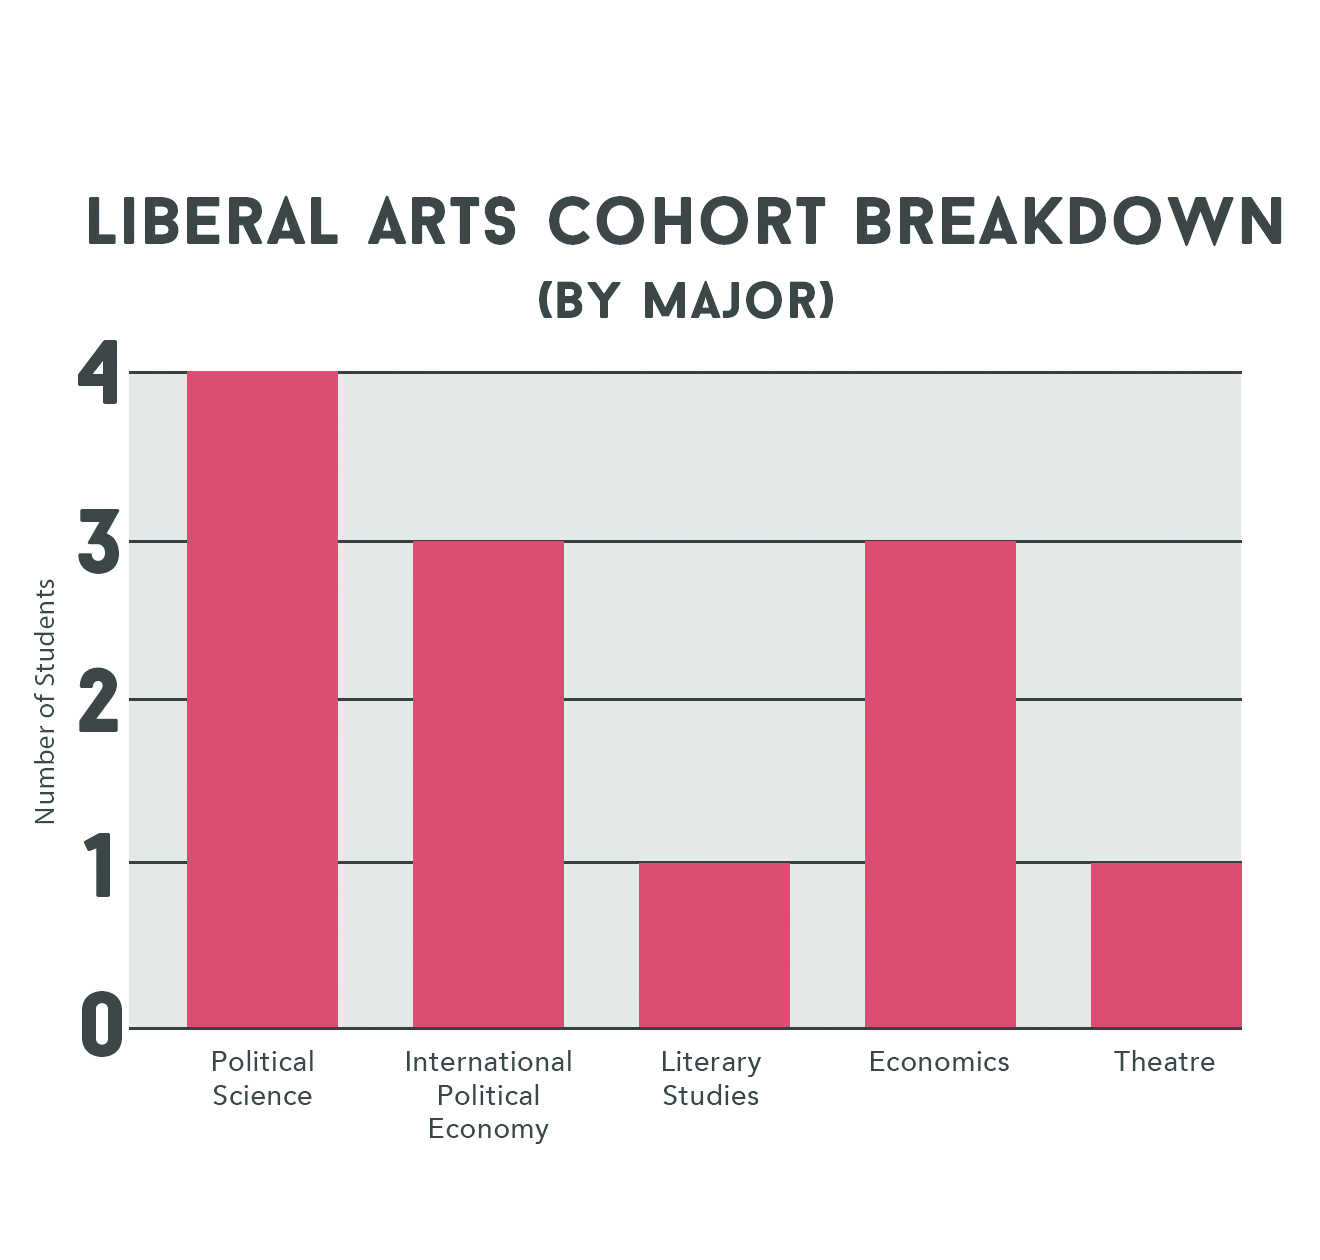 Diversity through liberal arts